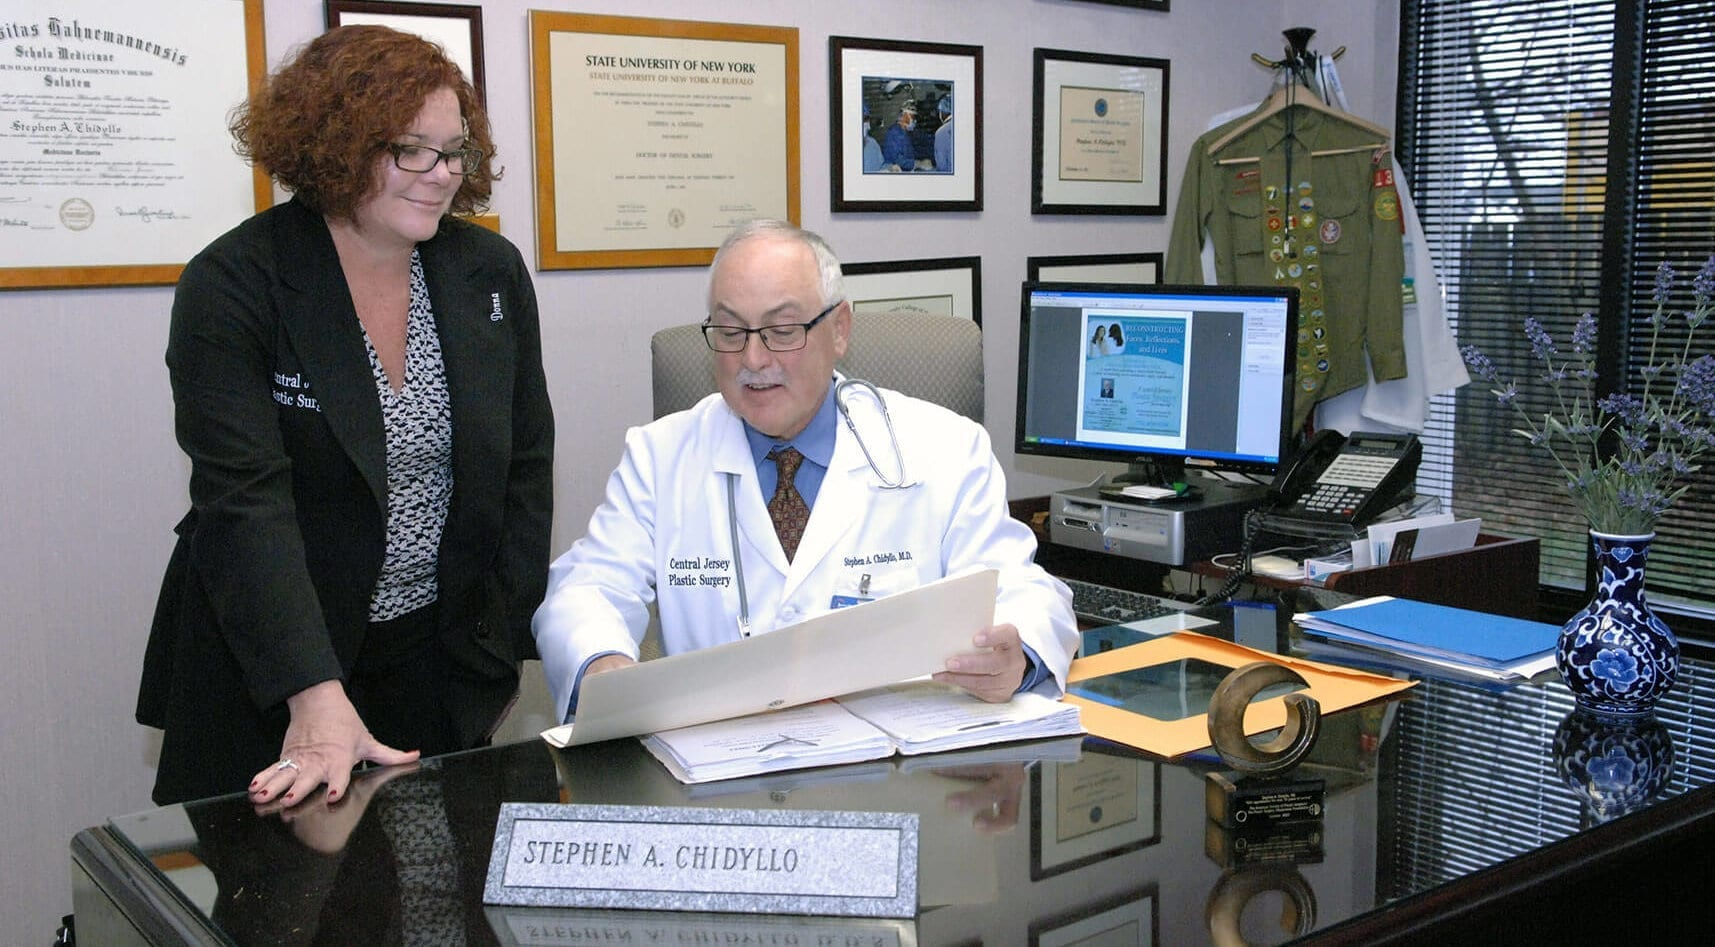 Dr. Stephen Chidyllo, Plastic Surgeon